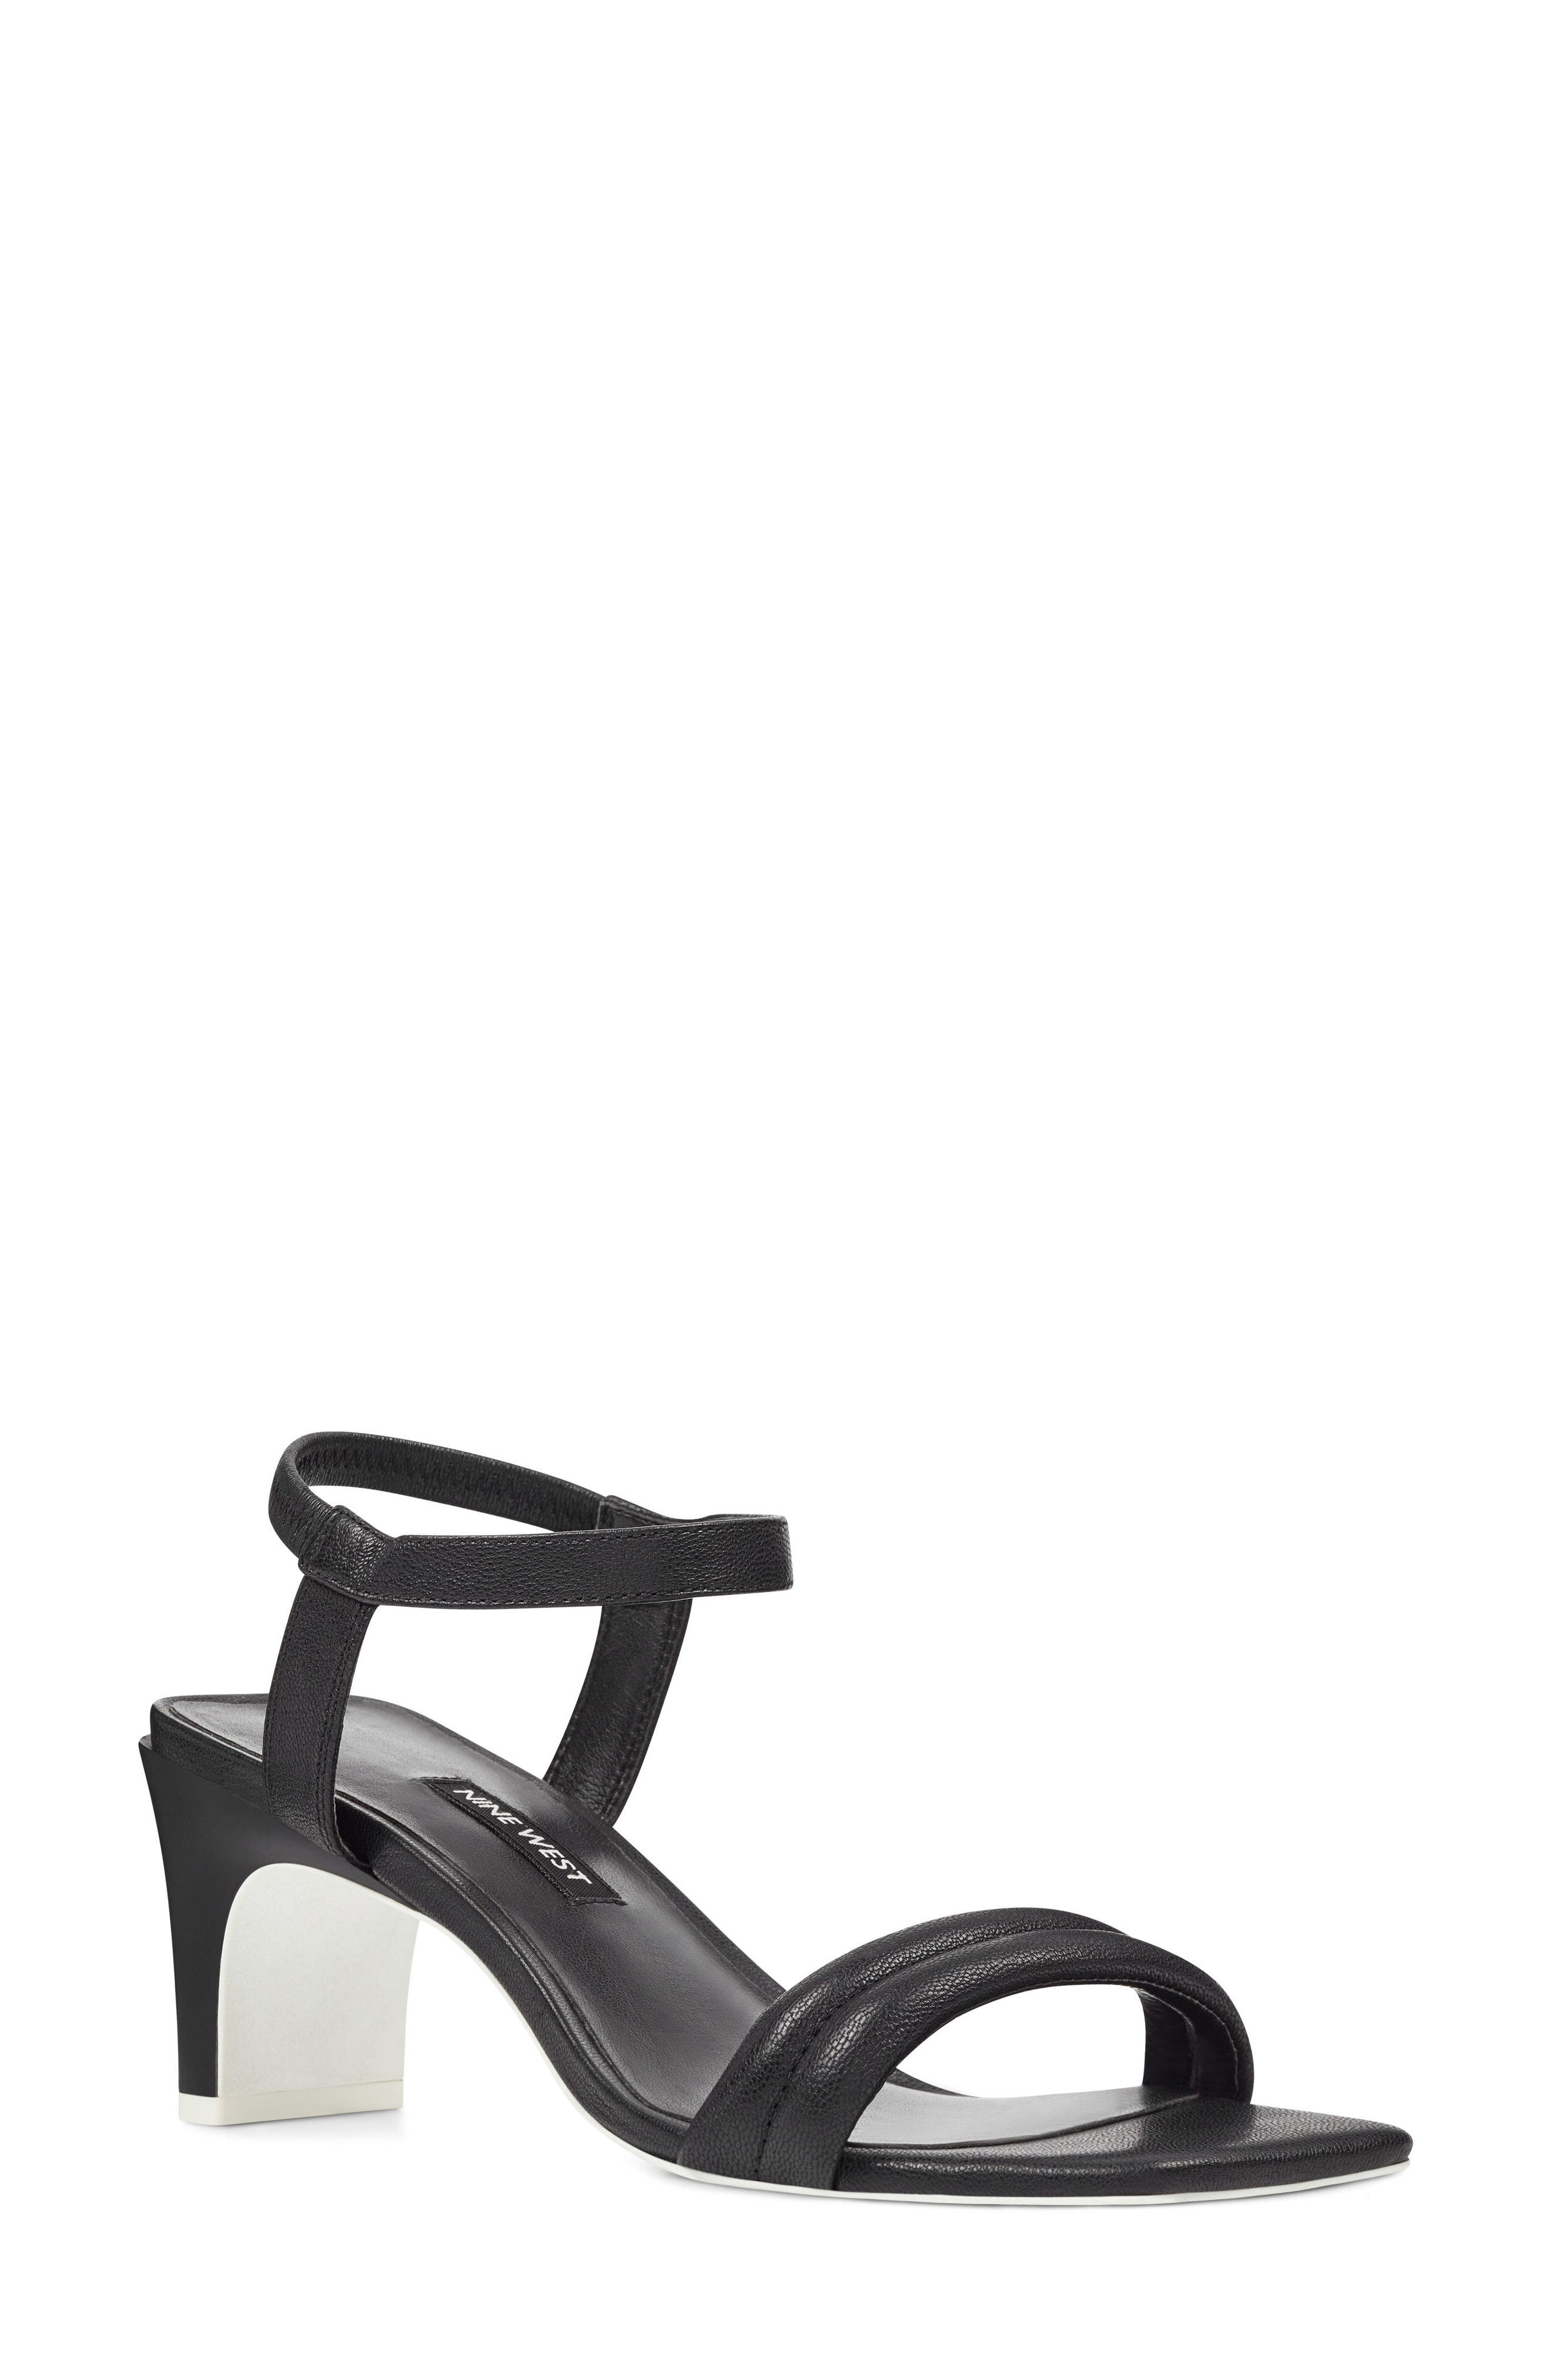 Urgreat Ankle Strap Sandal,                             Main thumbnail 1, color,                             BLACK LEATHER